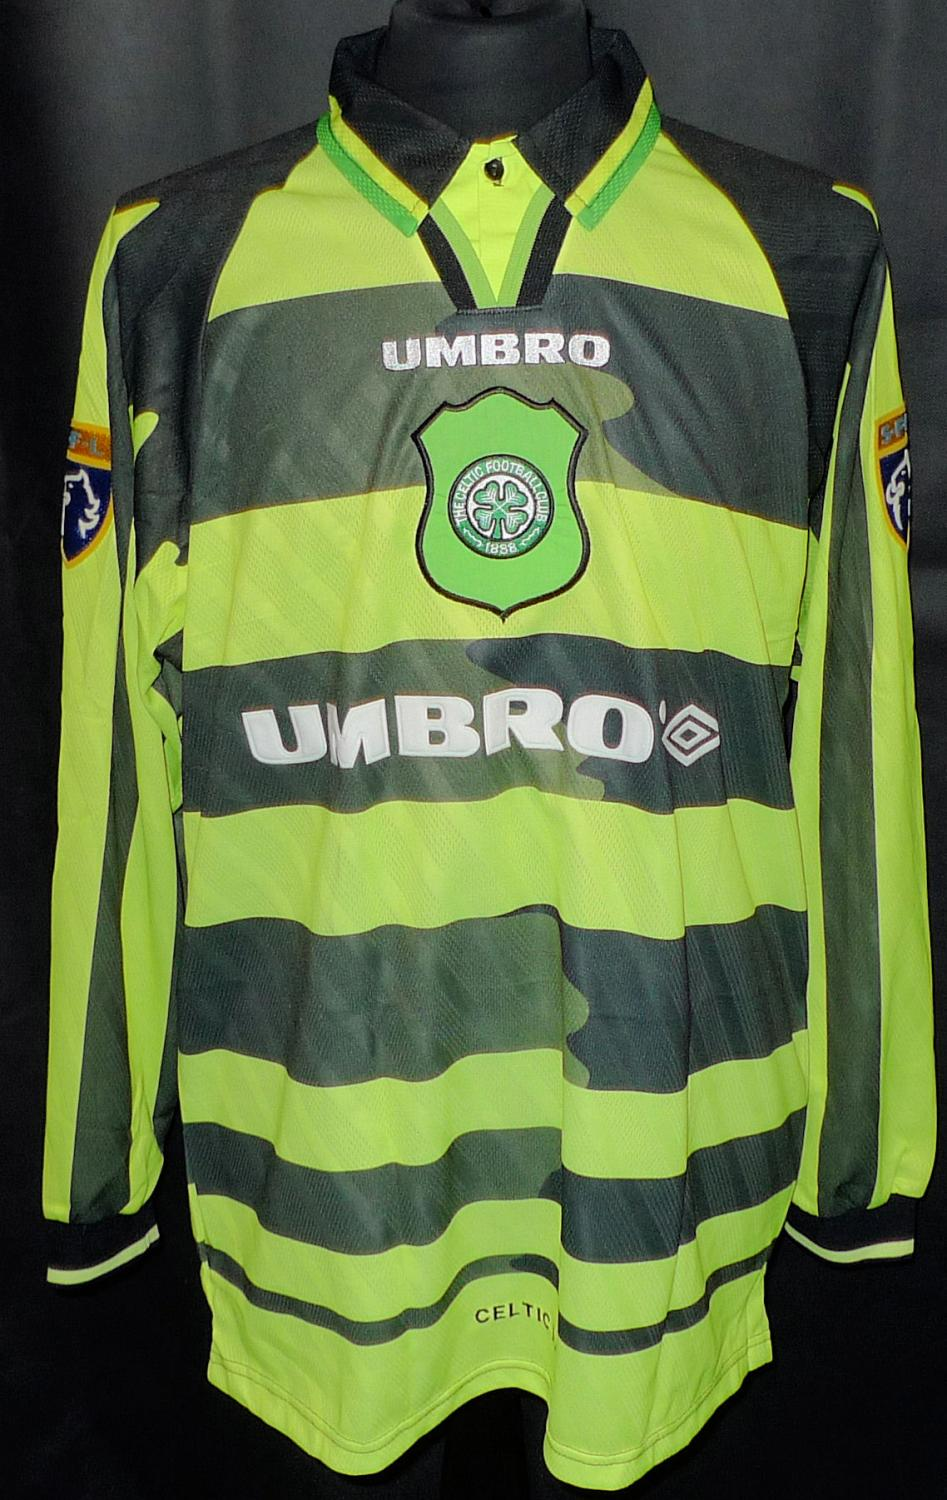 low priced df575 ddd30 Celtic Away football shirt 1997 - 1998. Sponsored by Umbro